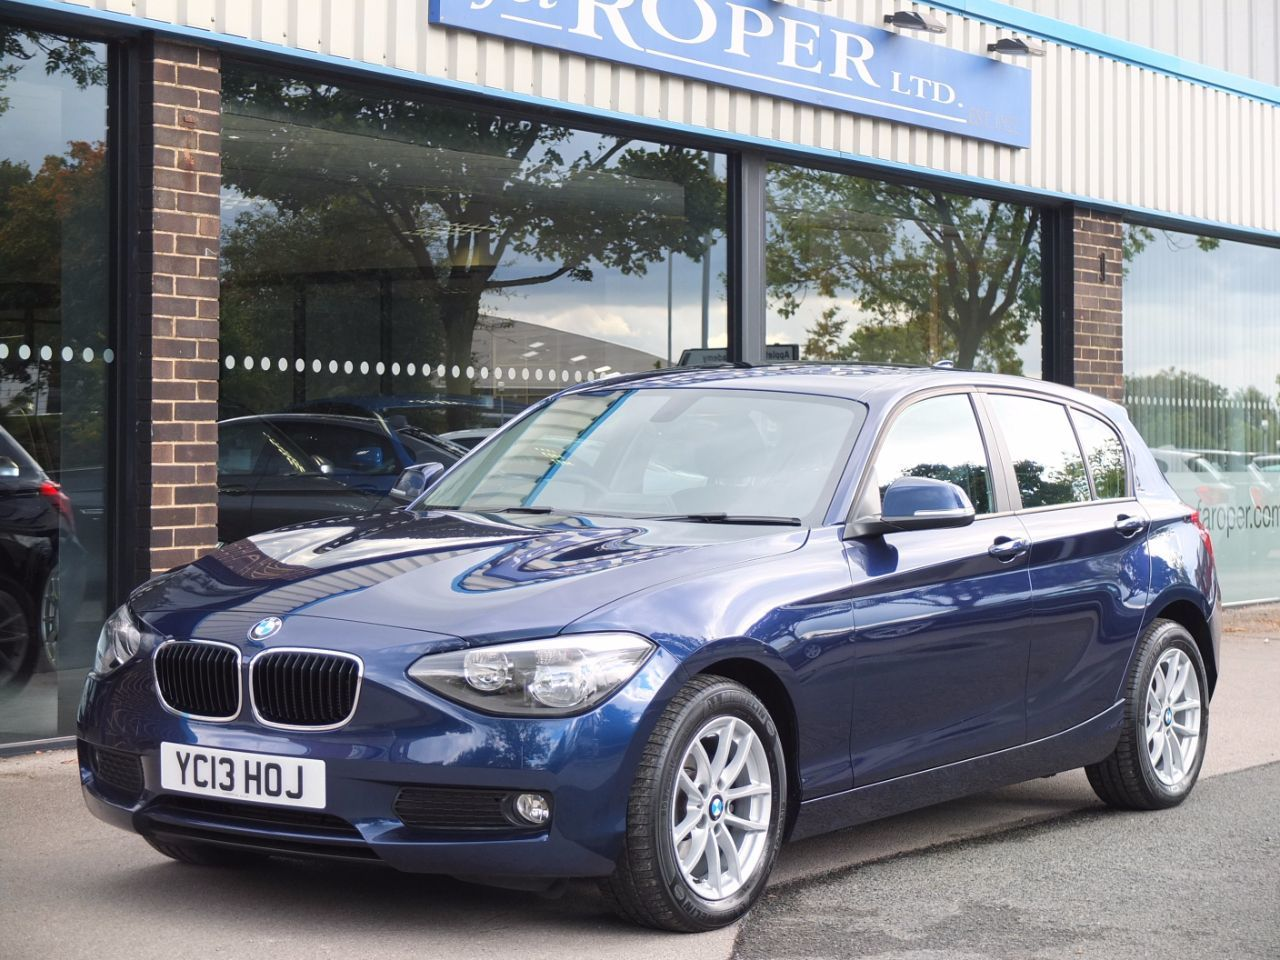 second hand bmw 1 series sports hatch 116i se 5 door automatic for sale in bradford west. Black Bedroom Furniture Sets. Home Design Ideas